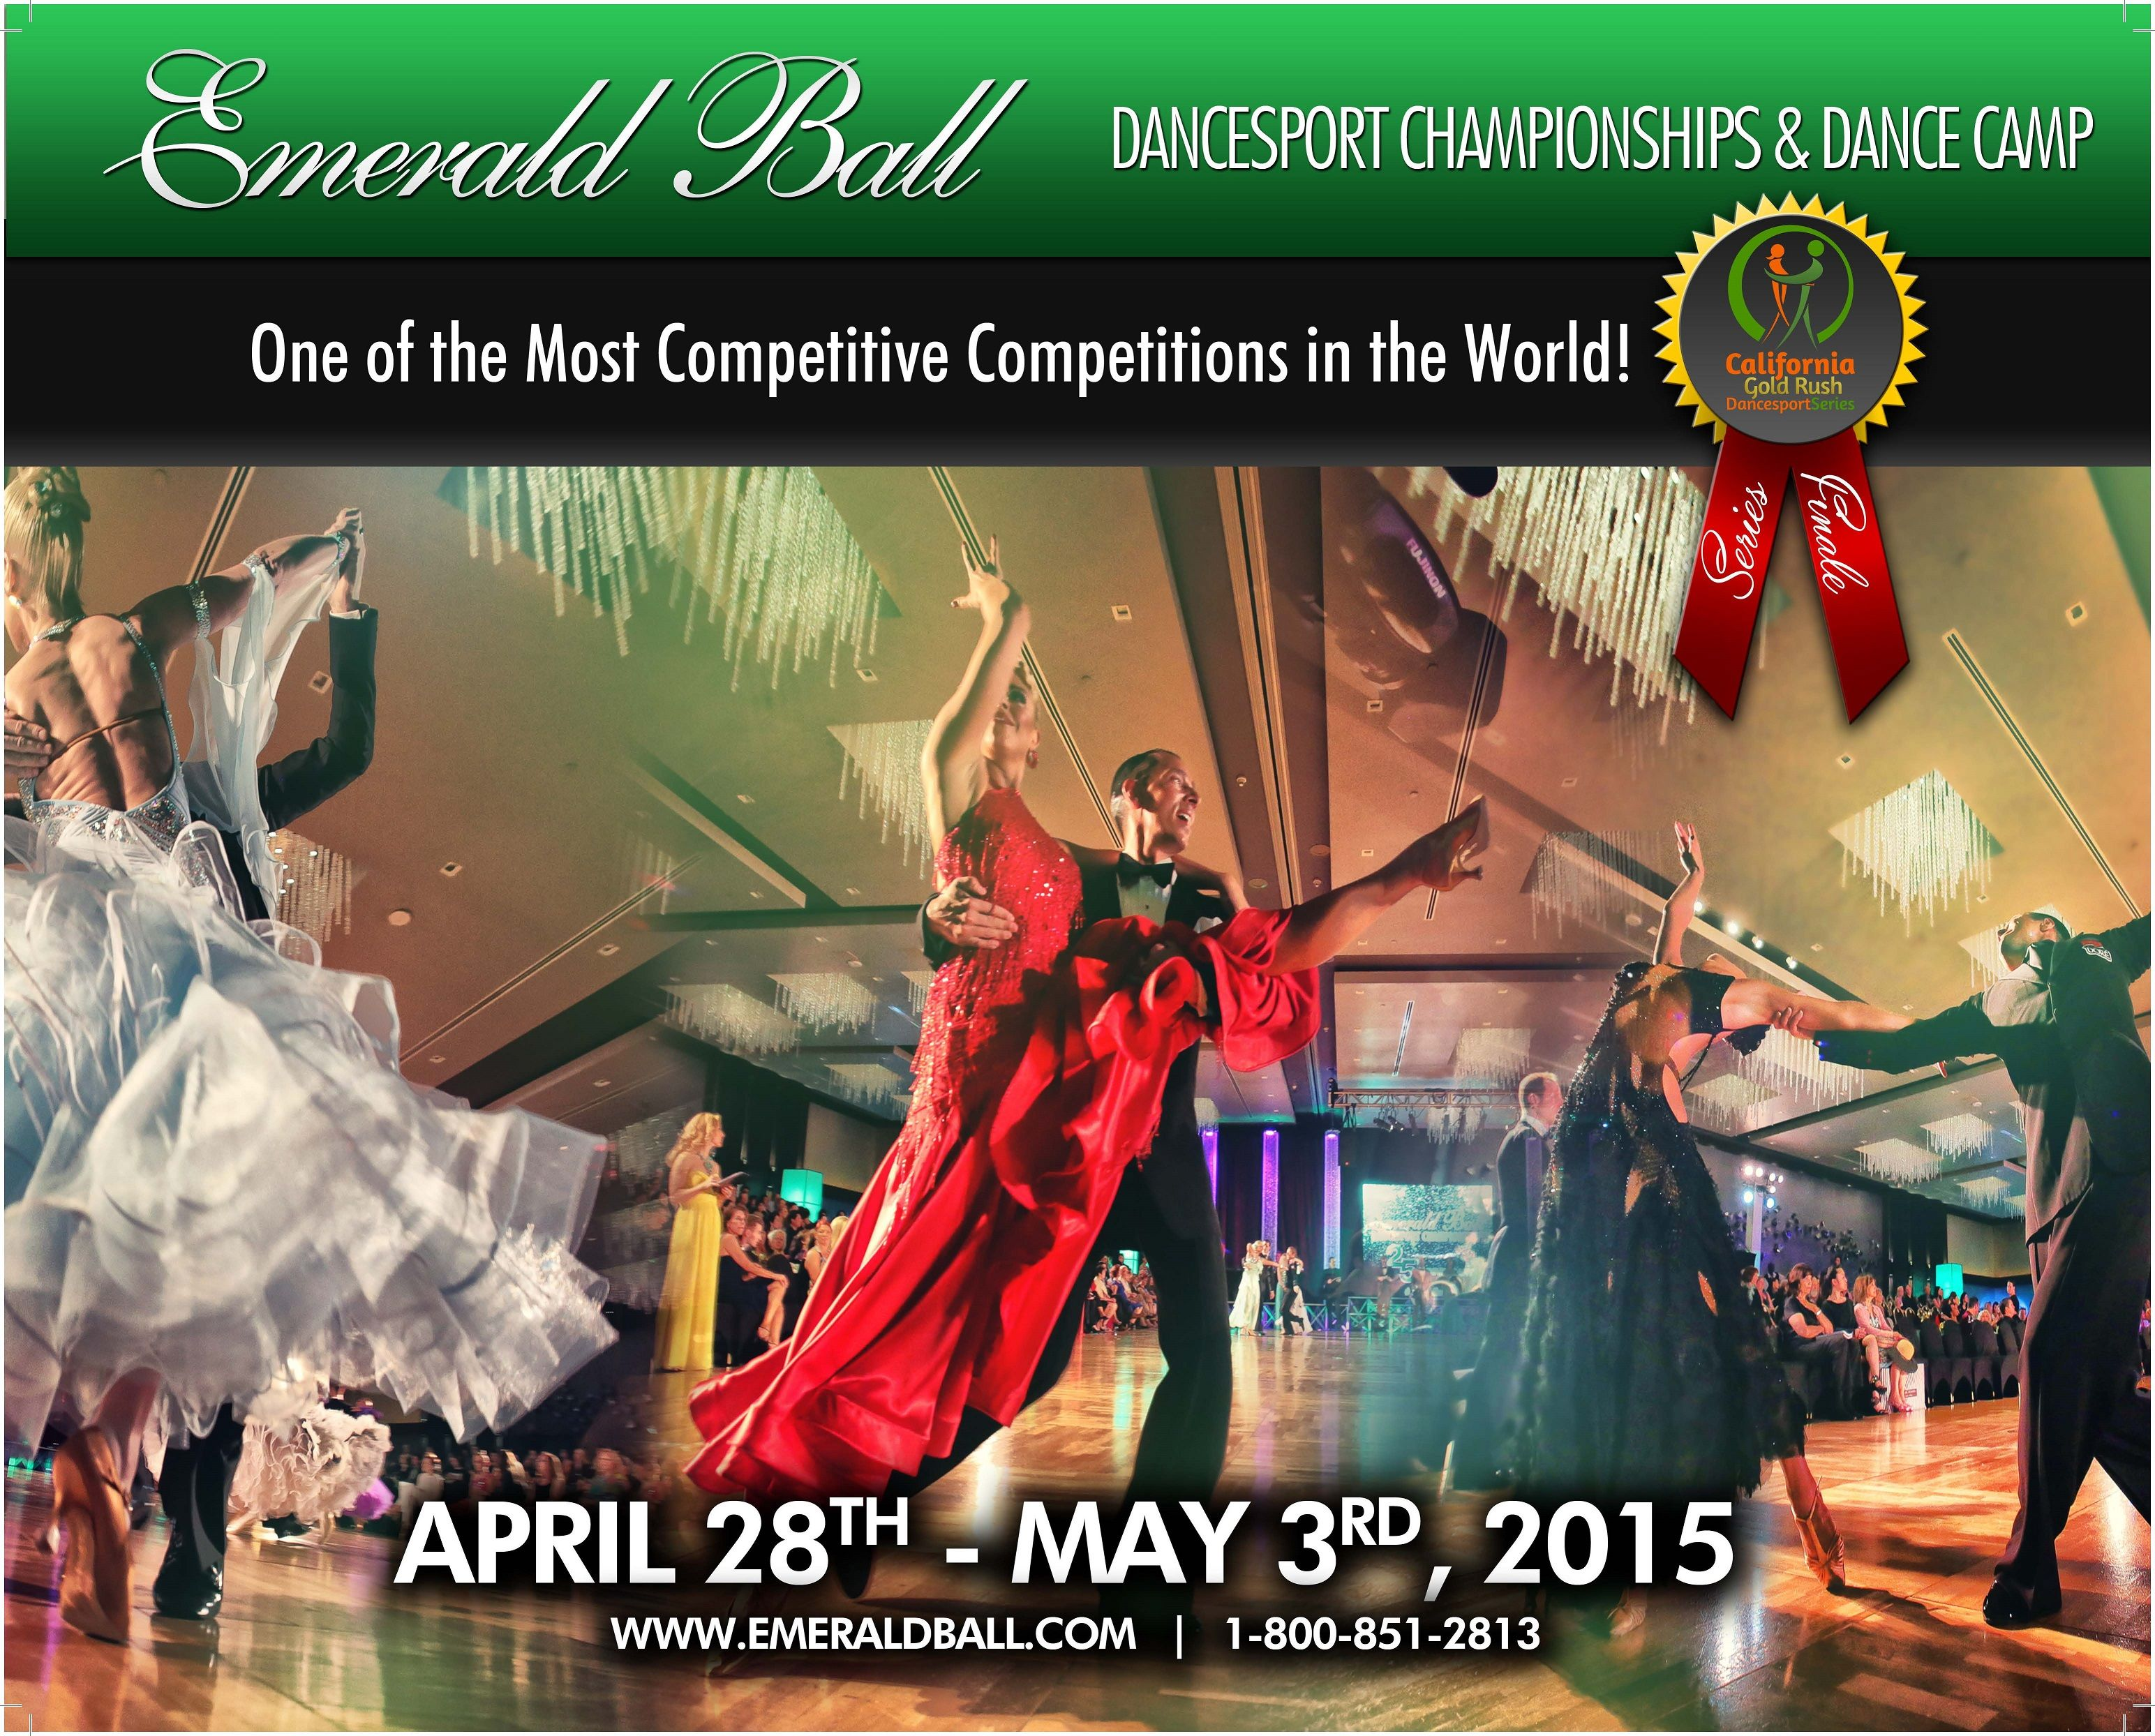 A big shout out to one of my graphic designer Ashley Witter . I love this new Emerald Ball ad she just created for the 2015 Dance Vision Catalog.  Over 4,000 Ballroom instructional videos online at www.DanceVision.com